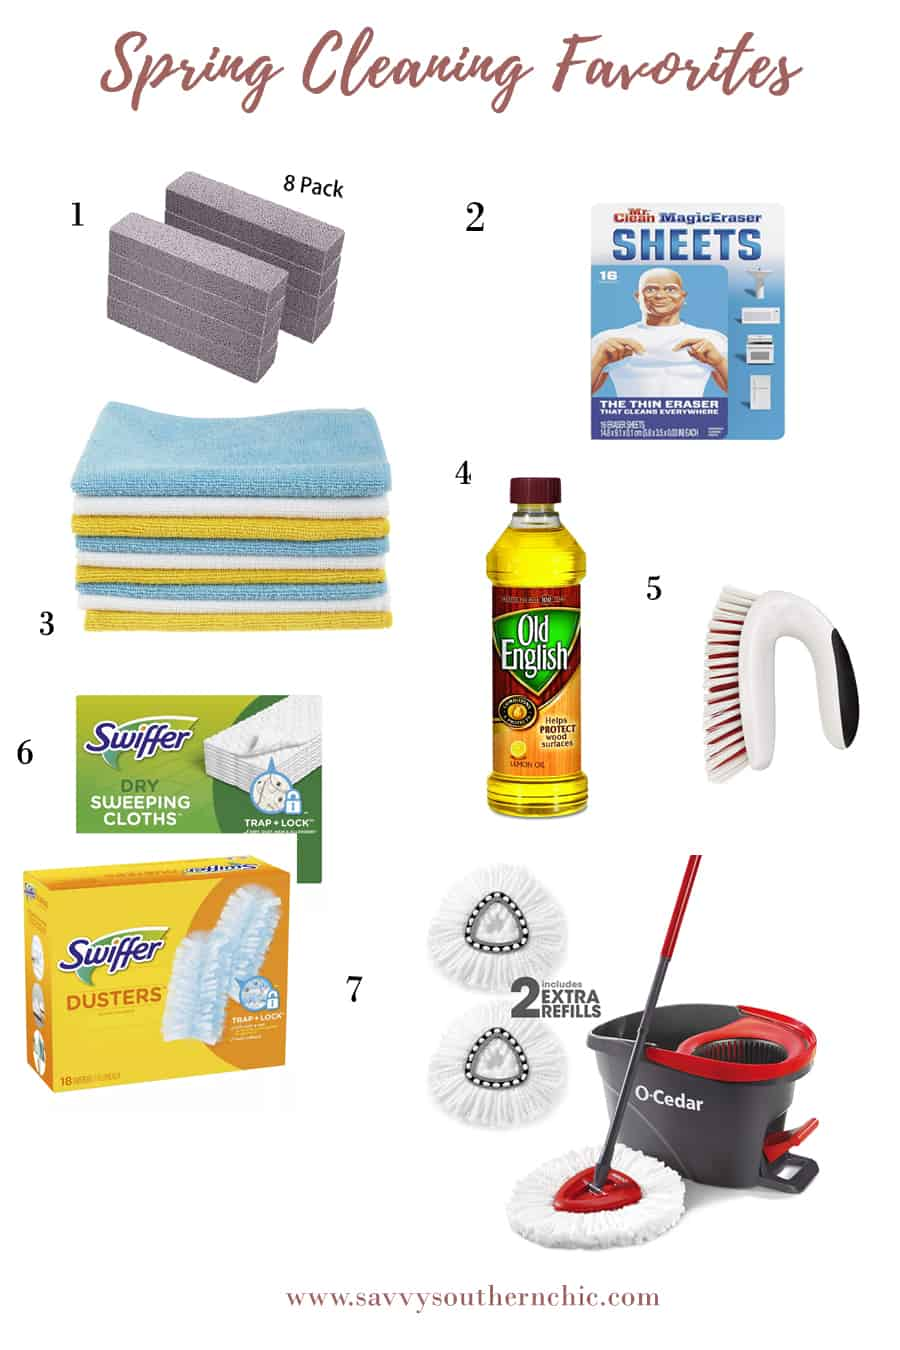 Spring cleaning favorites/ tools for cleaning